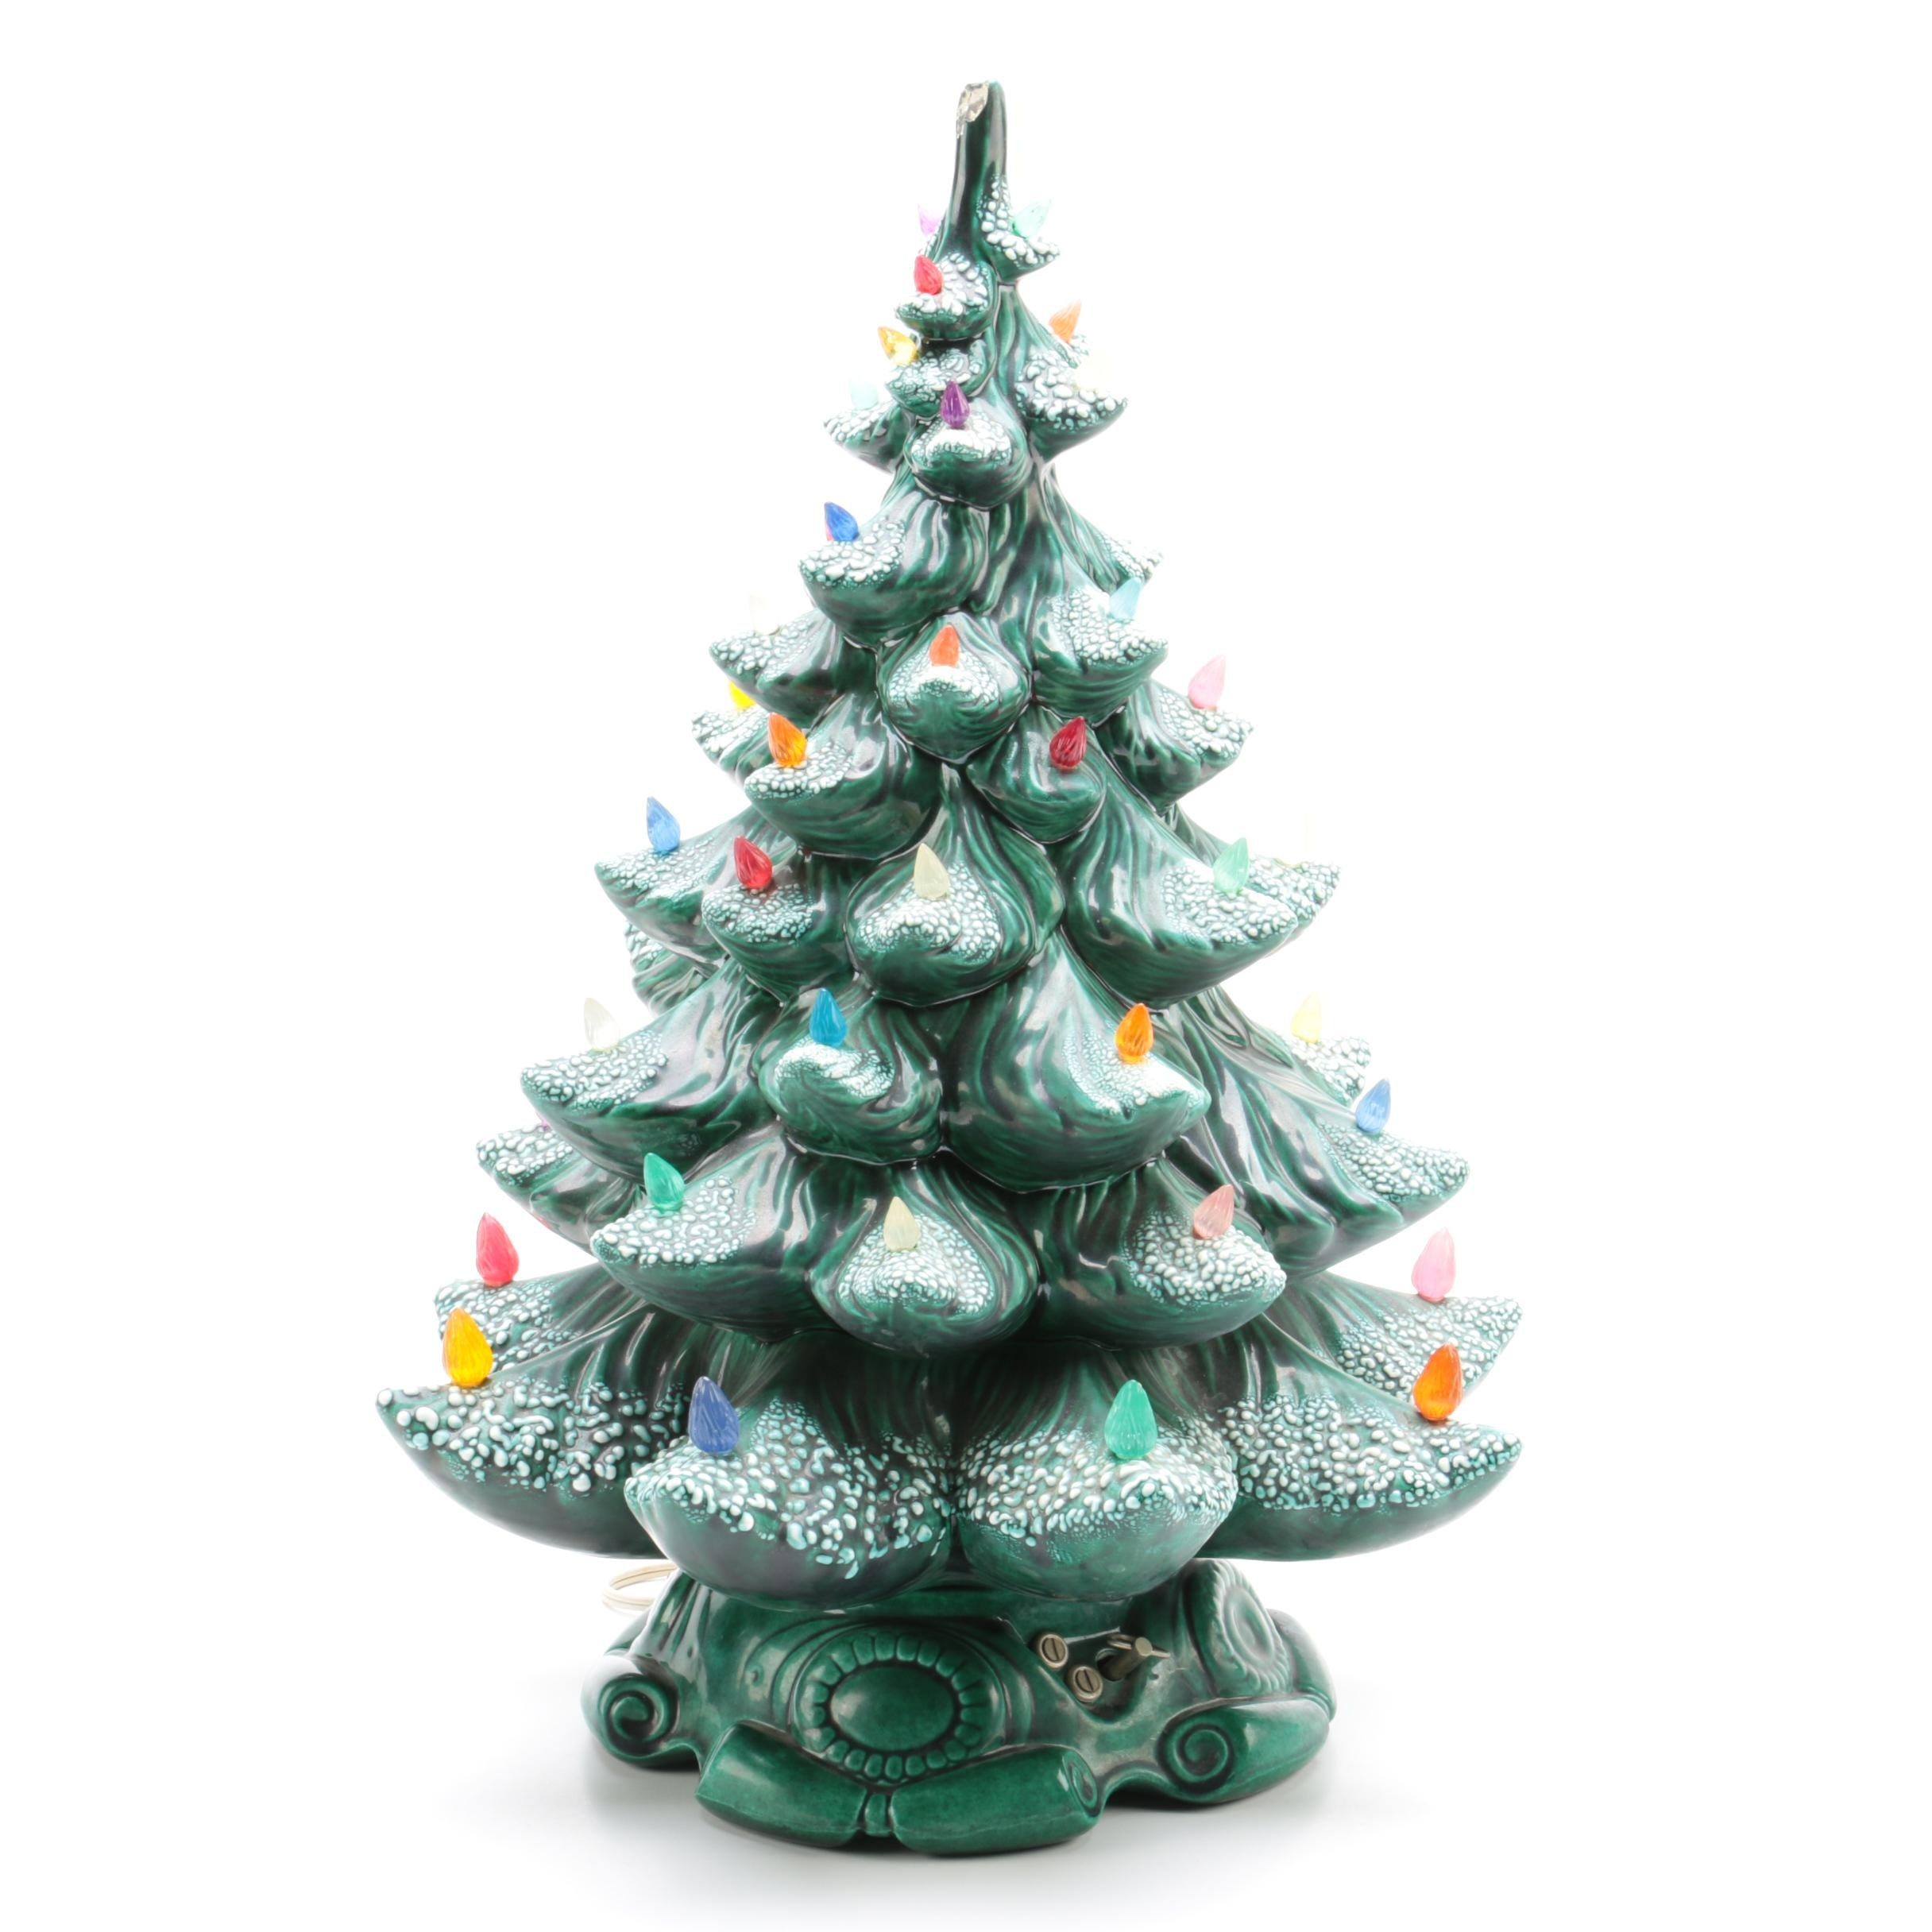 Ceramic Light Up Christmas Tree With a Music Box in the Base